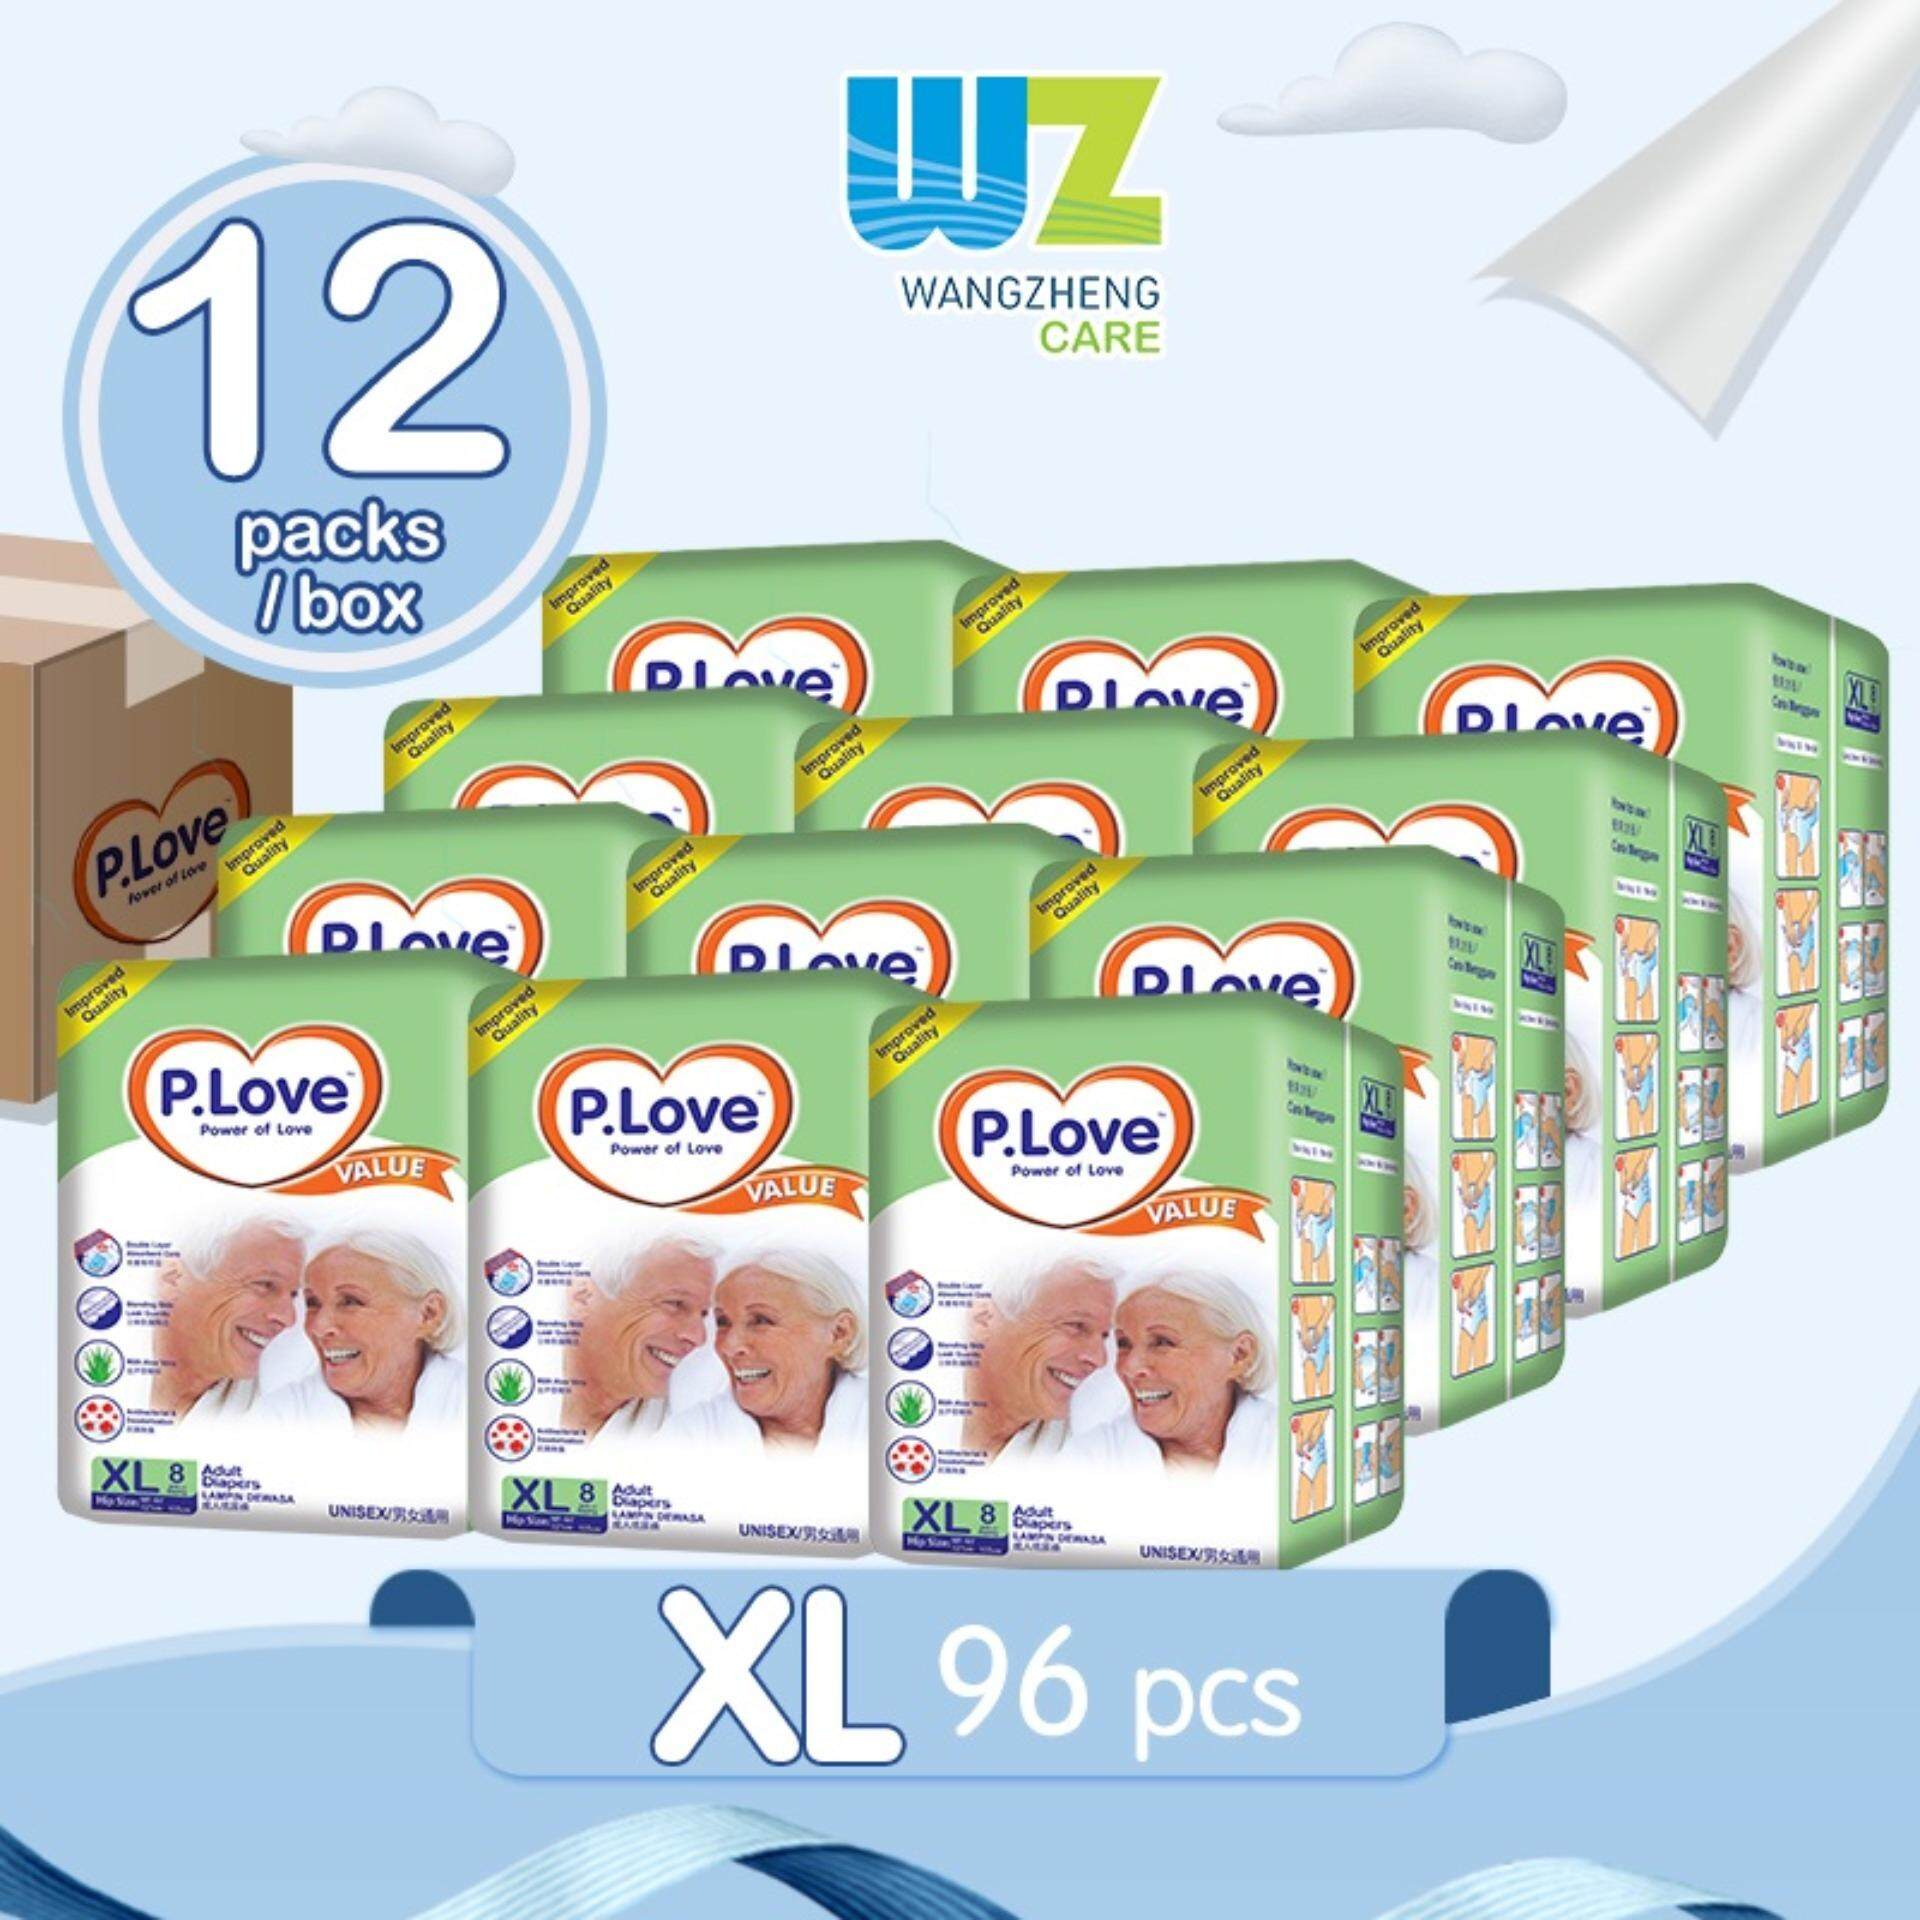 PLove Value Adult Tape Diapers XL8 x 12 Packs [WangZheng CARE]